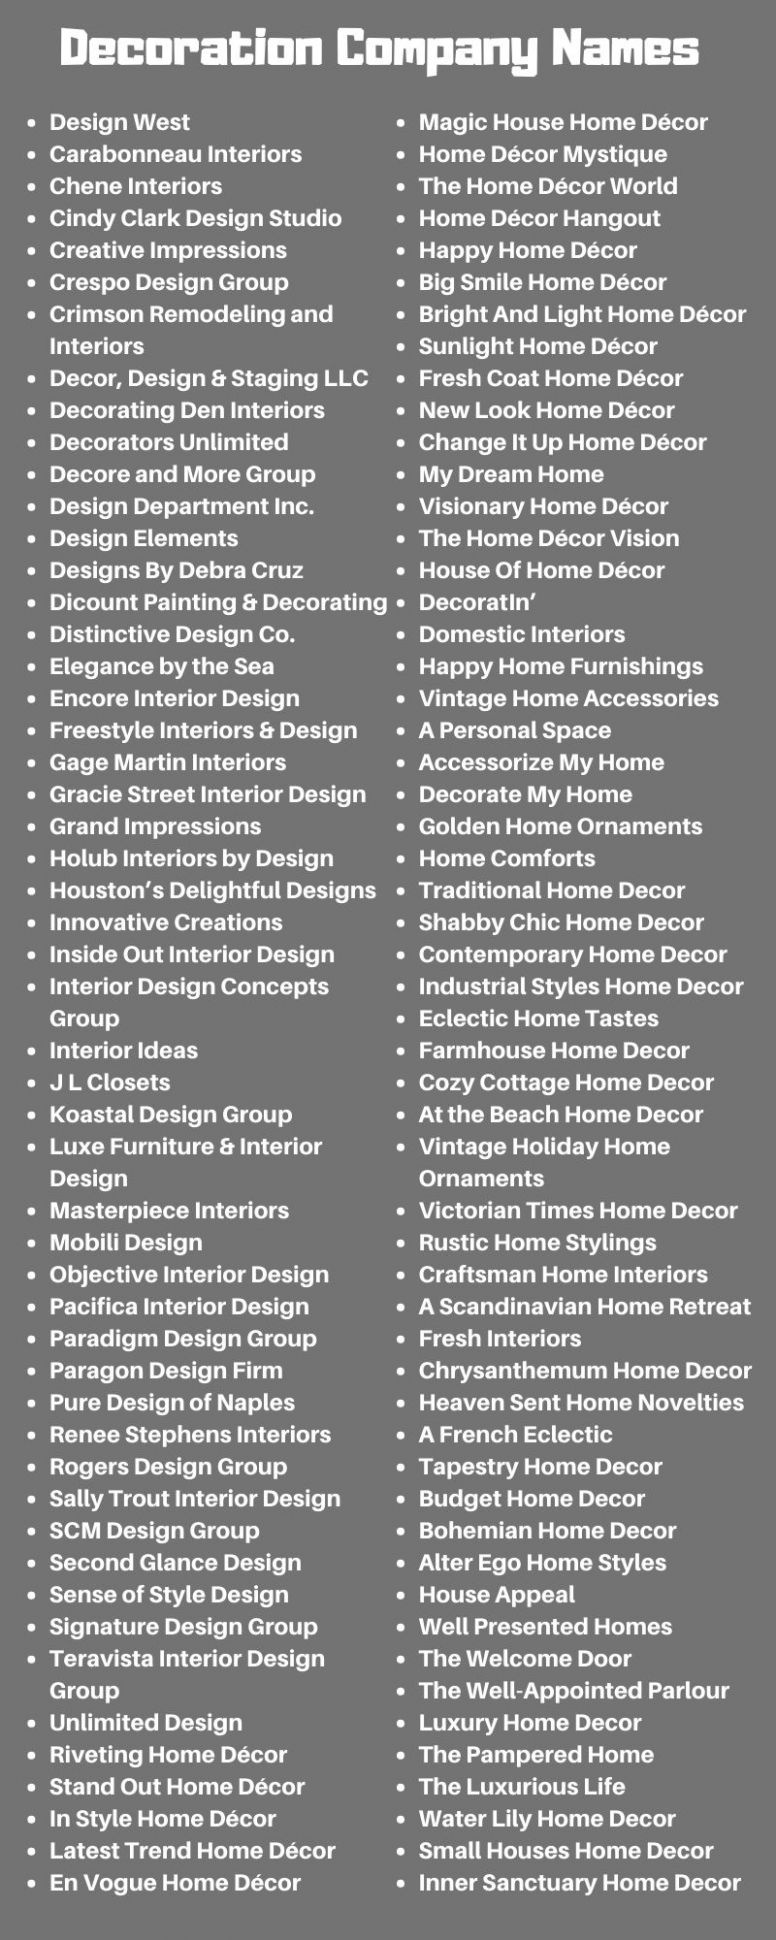 Decoration Company Names: 11+ Business Names for Home Decor